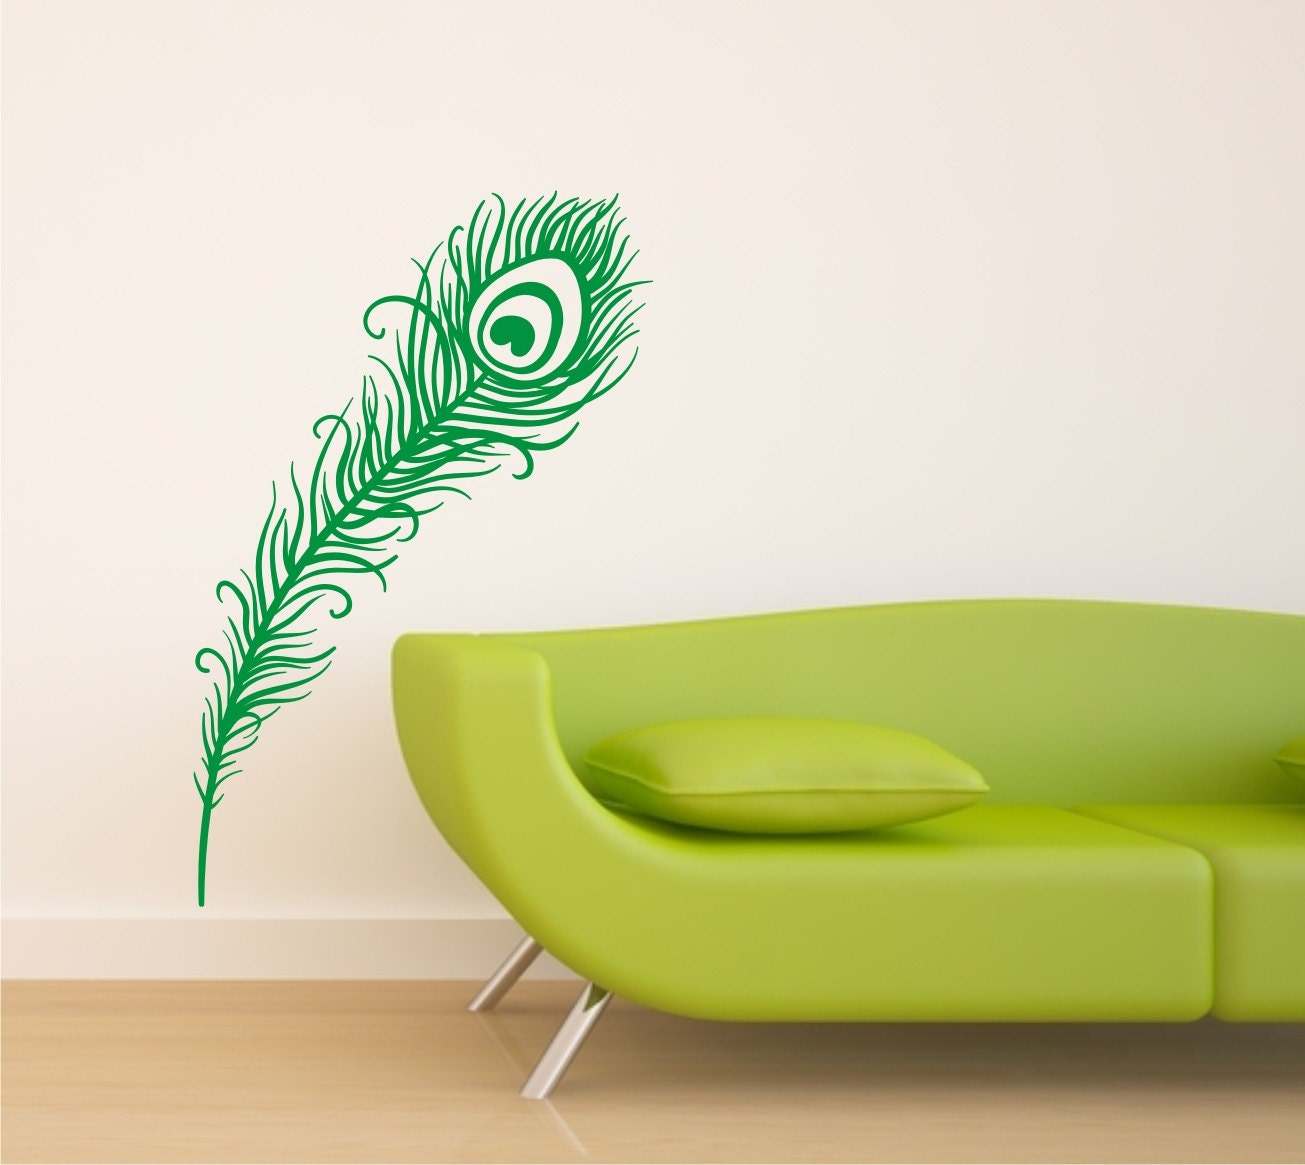 items similar to peacock feather vinyl wall sticker on etsy stickerskart wall stickers oh dreamy peacock feather 57116